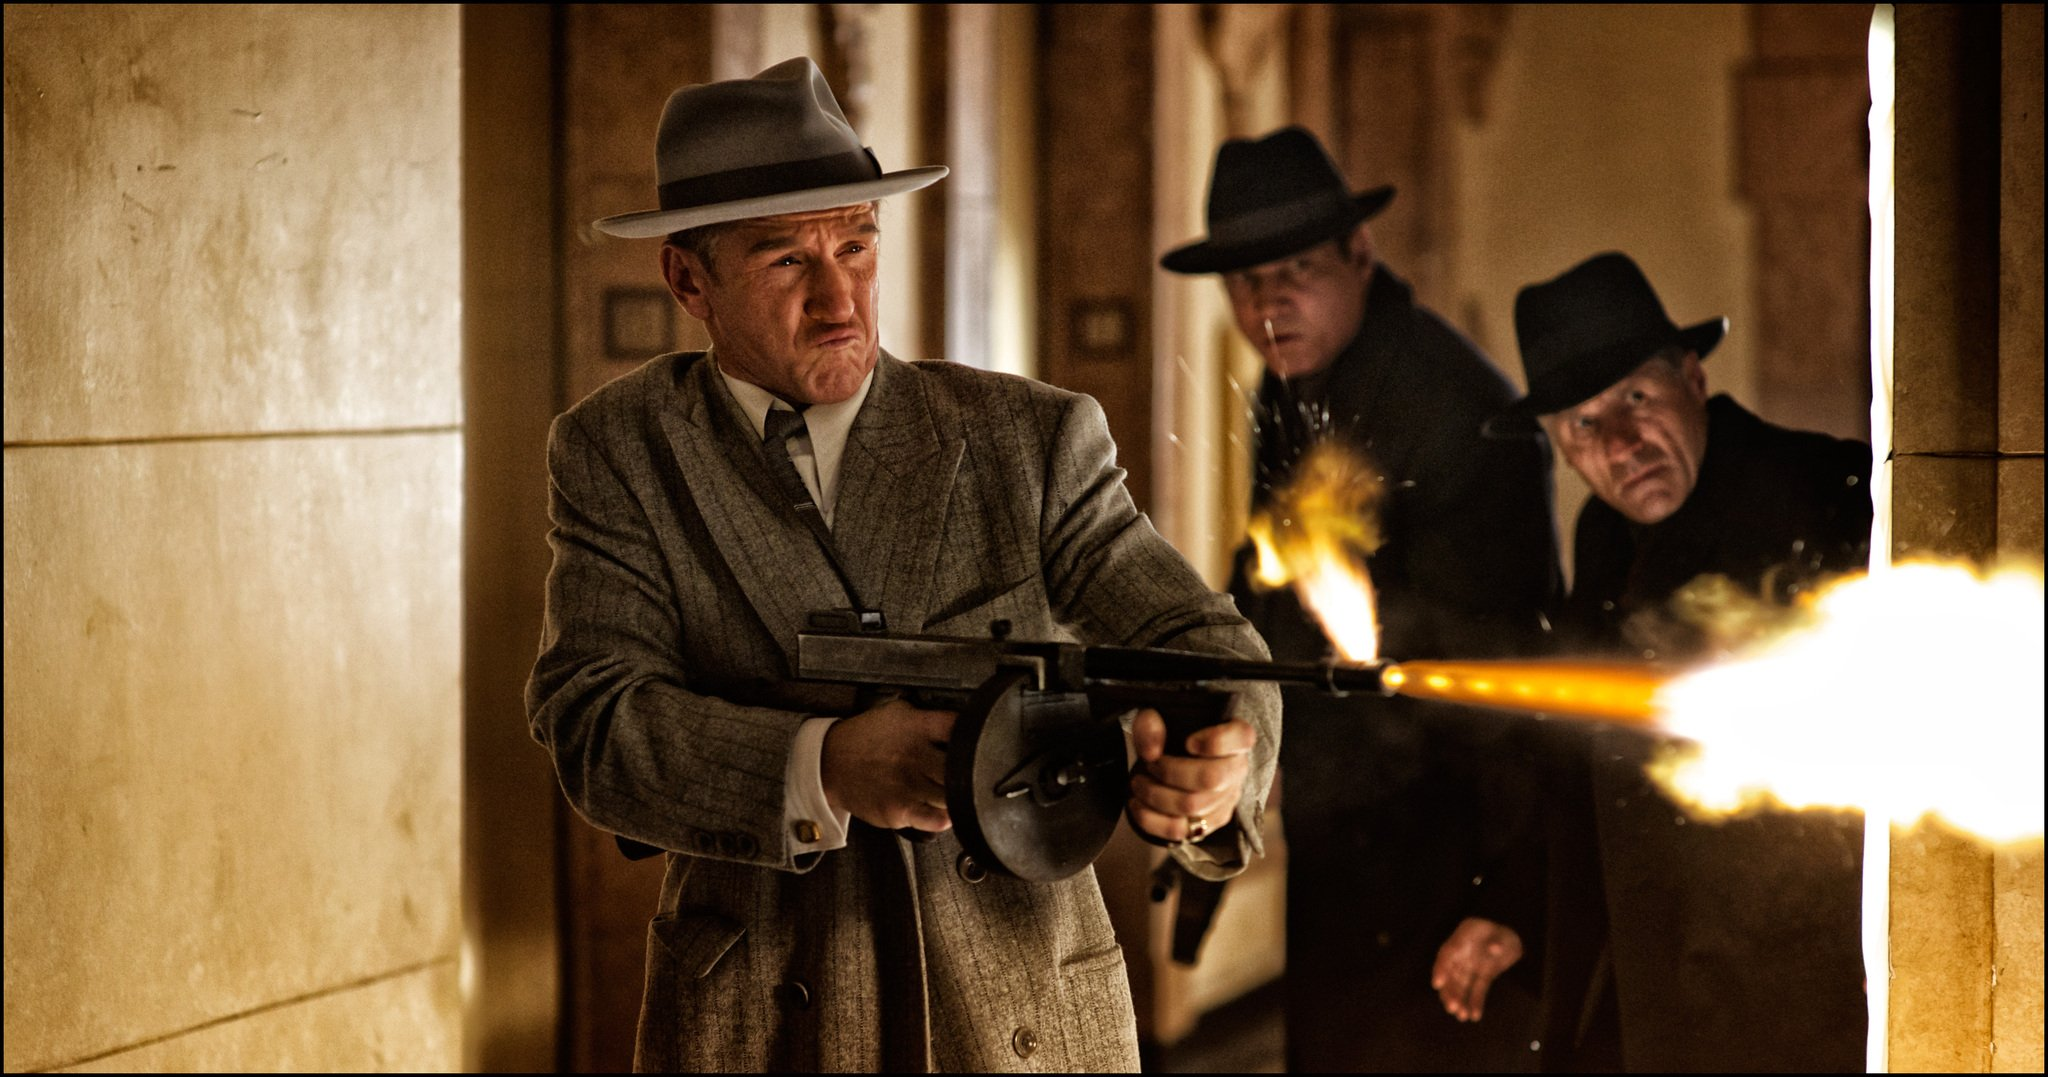 Sean Penn and Holt McCallany in GANGSTER SQUAD